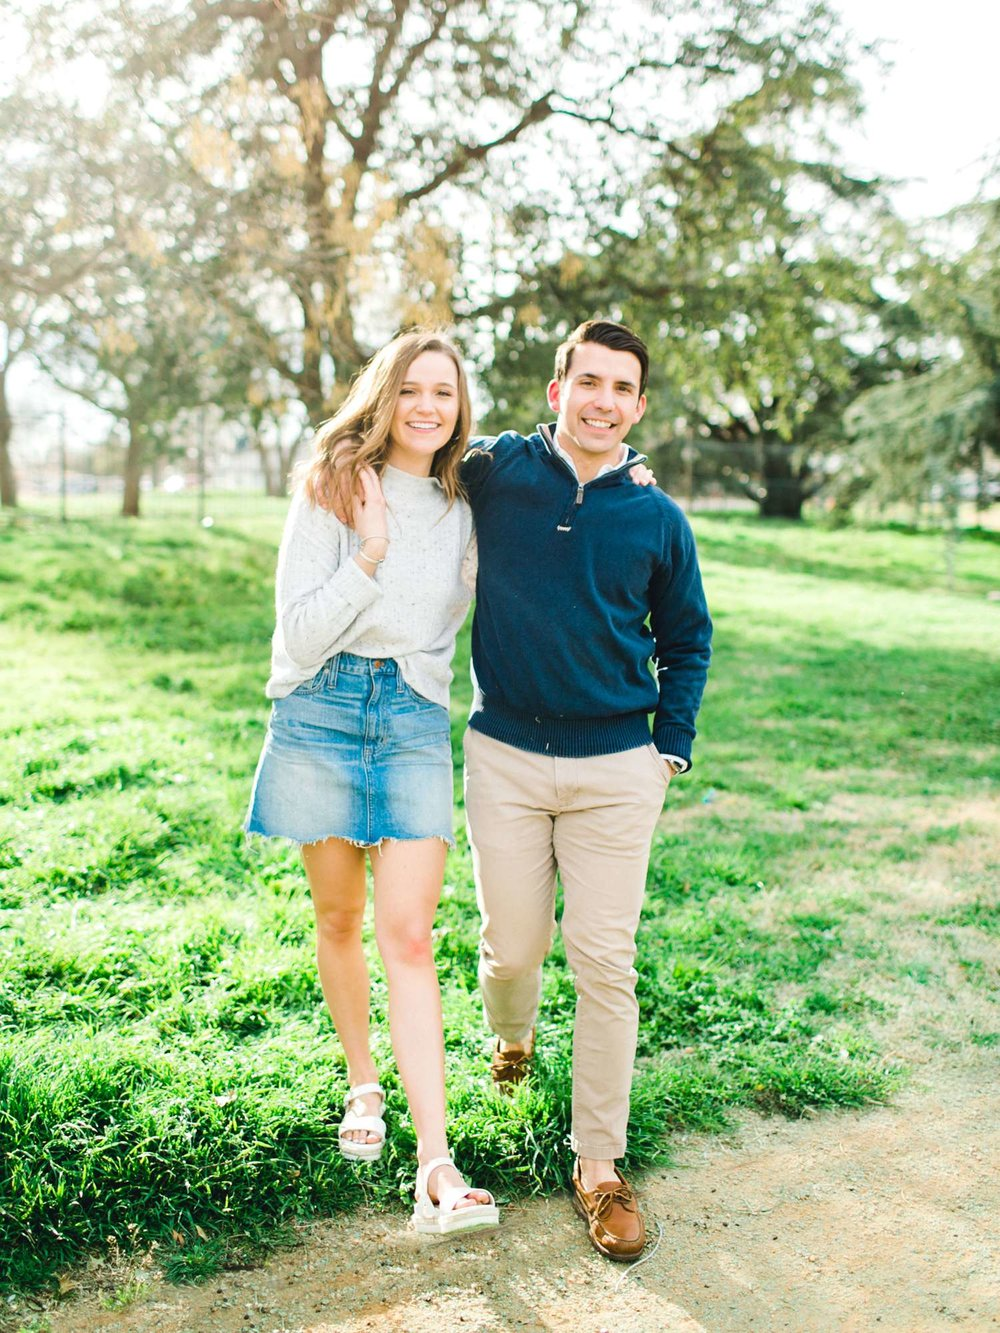 CAROLINE+CHRISTIAN+ALLEEJ+ENGAGEMENTS+LUBBOCK+WEDDING+PHOTOGRAPHER+FIRST+BAPTIST+CHURCH_0019.jpg